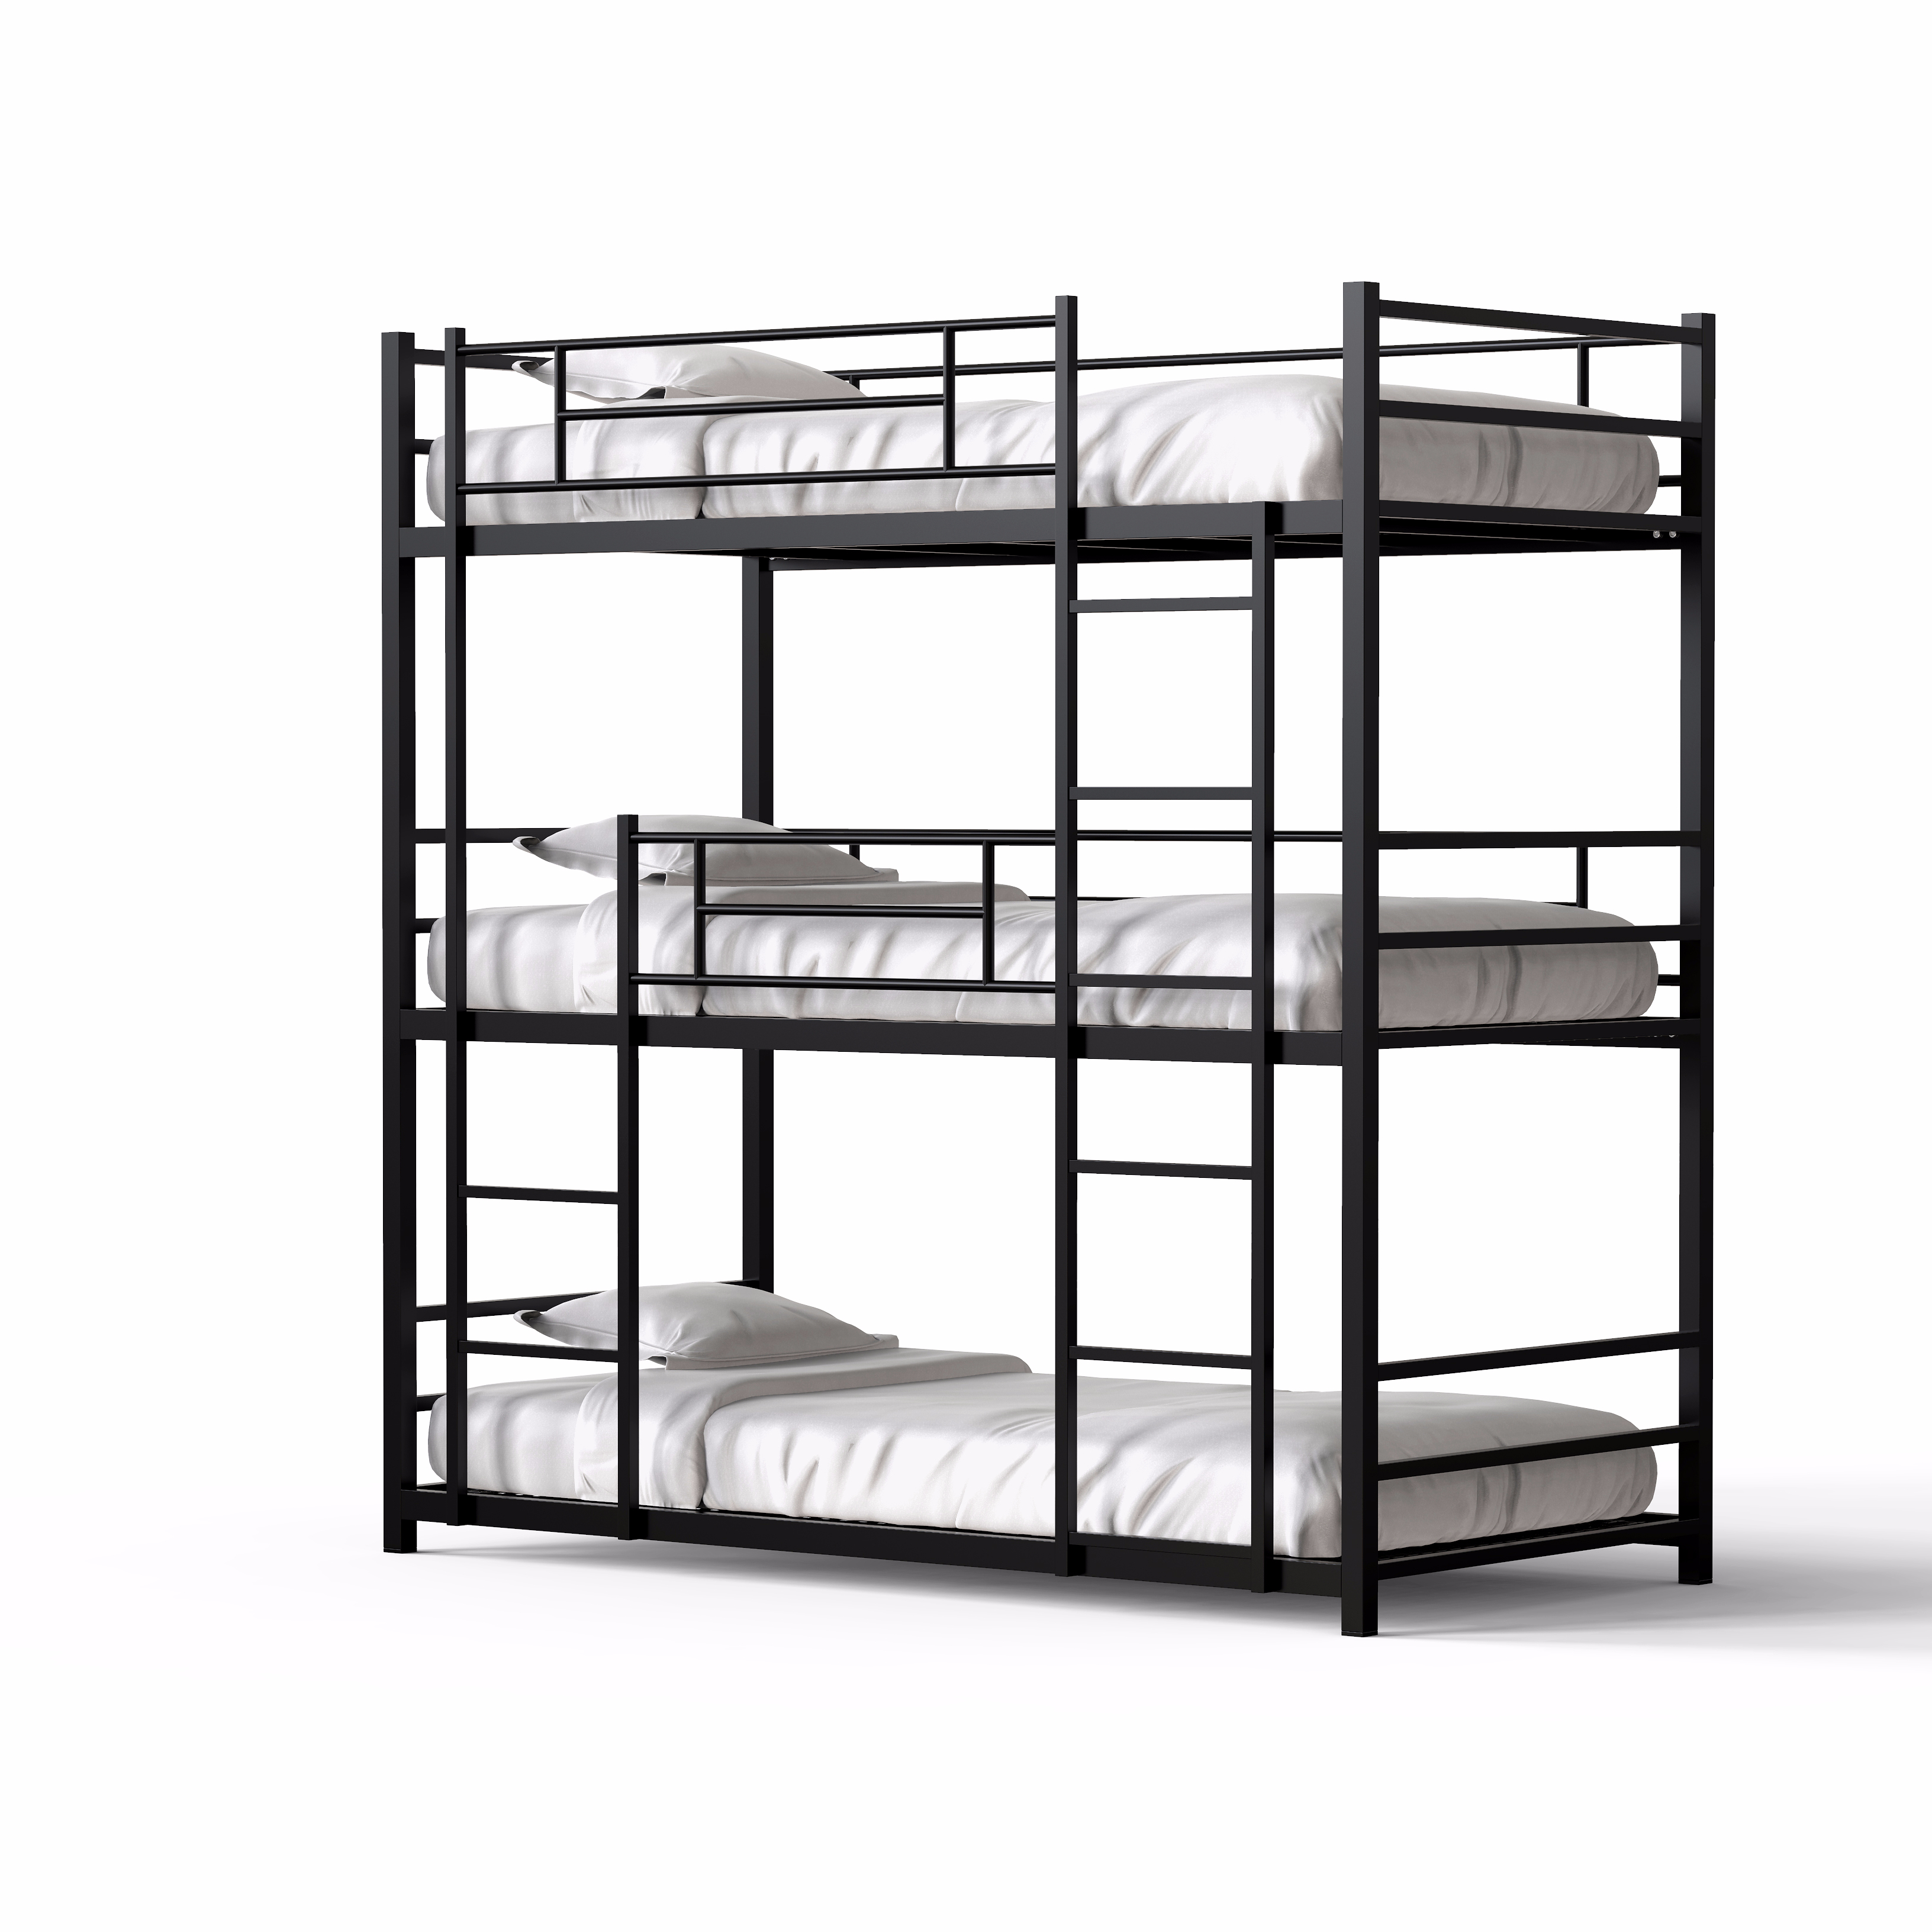 Metal triple bunk <strong>bed</strong> dormitory steel locker hostel <strong>beds</strong> 3 layer metal bunk <strong>bed</strong> with wire mesh bedroom furniture